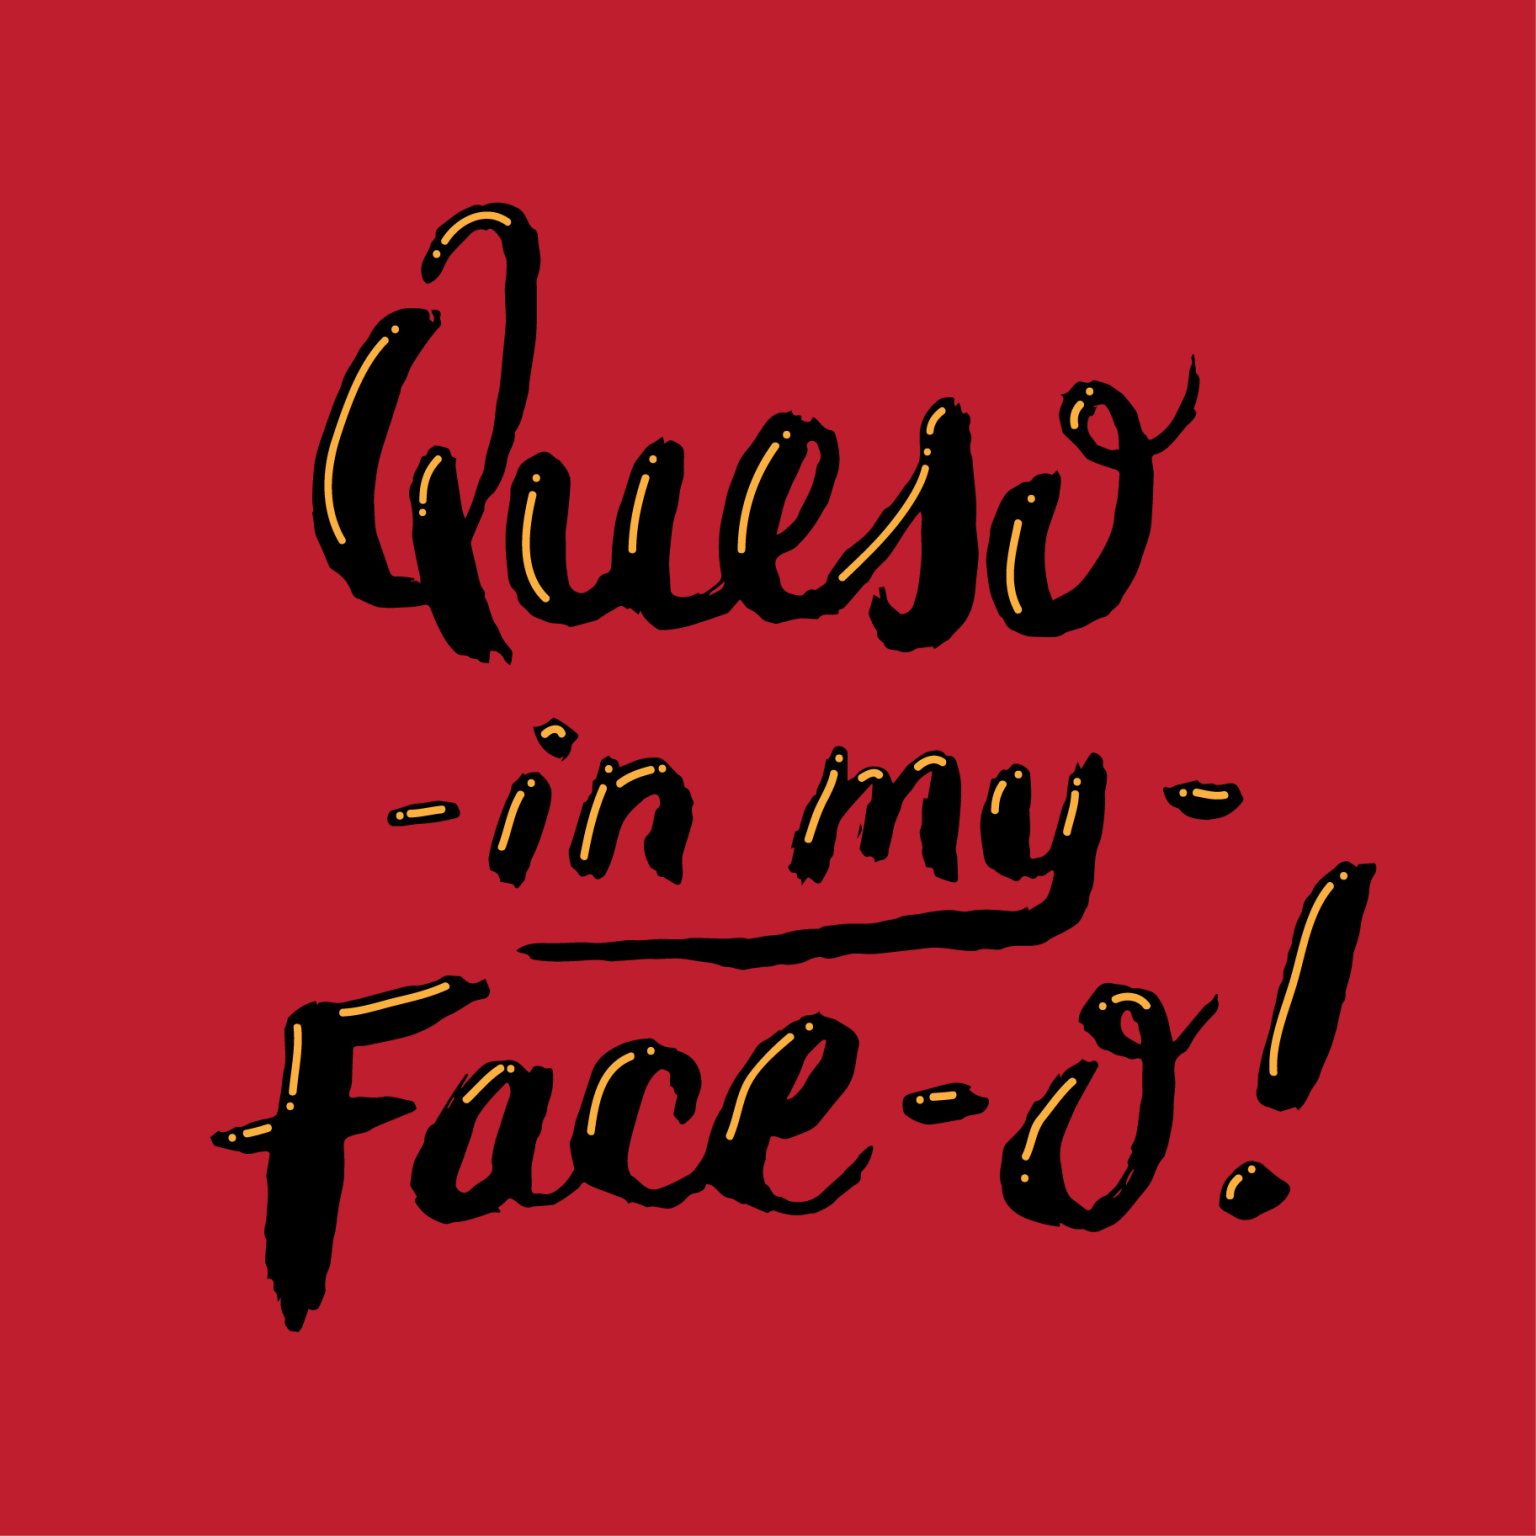 Queso hand lettering - editorial illustration